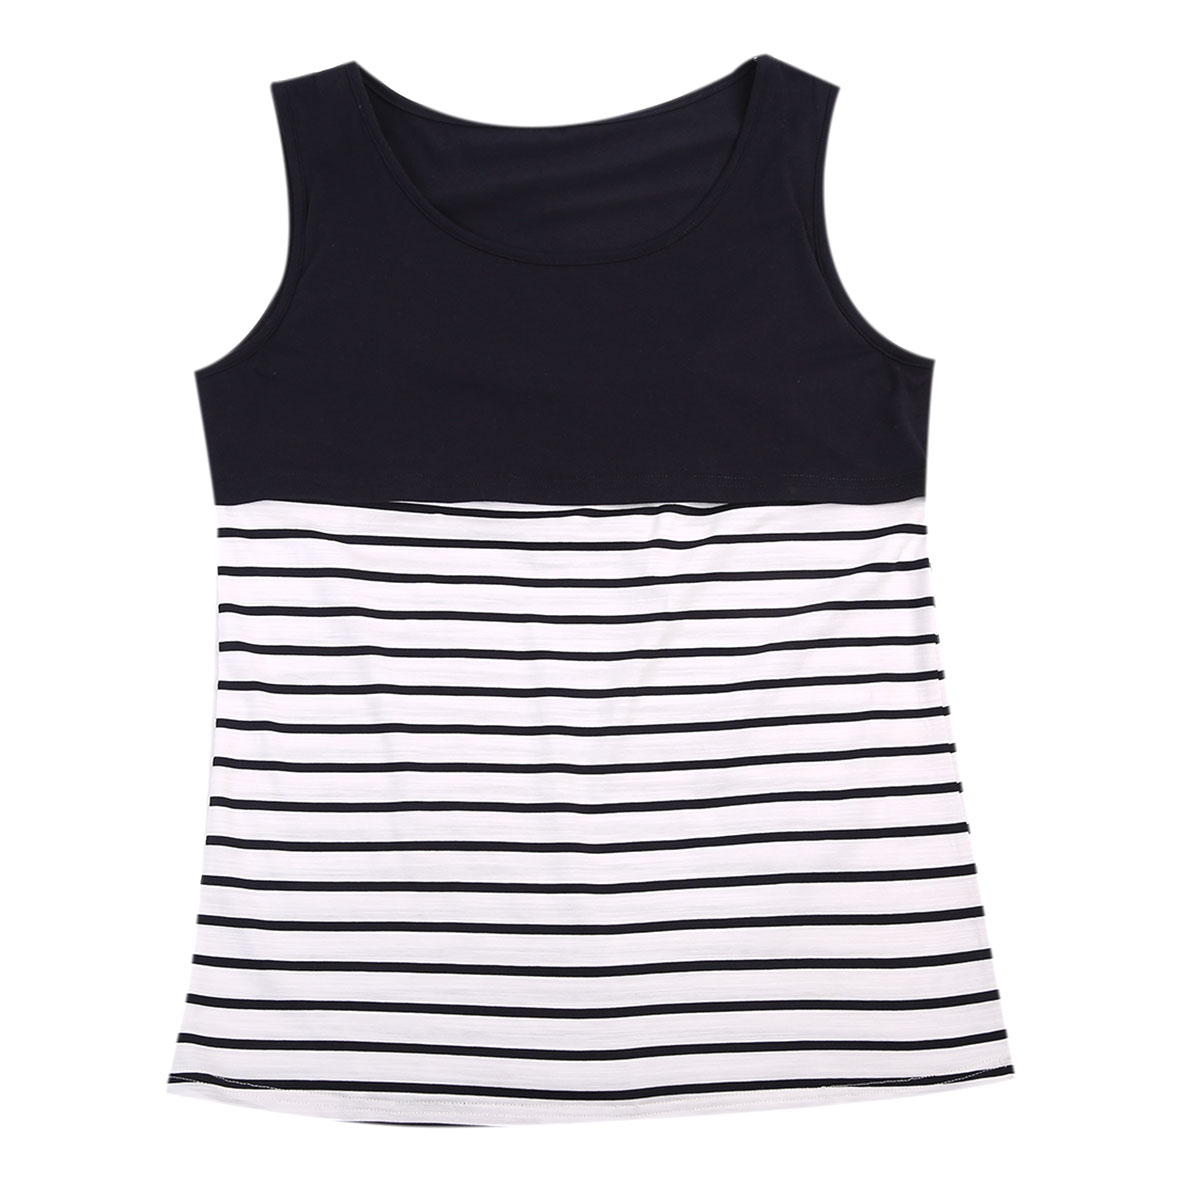 Pudcoco Womens Maternity Nursing Tank Top Sleeveless Comfy Breastfeeding Striped Clothes